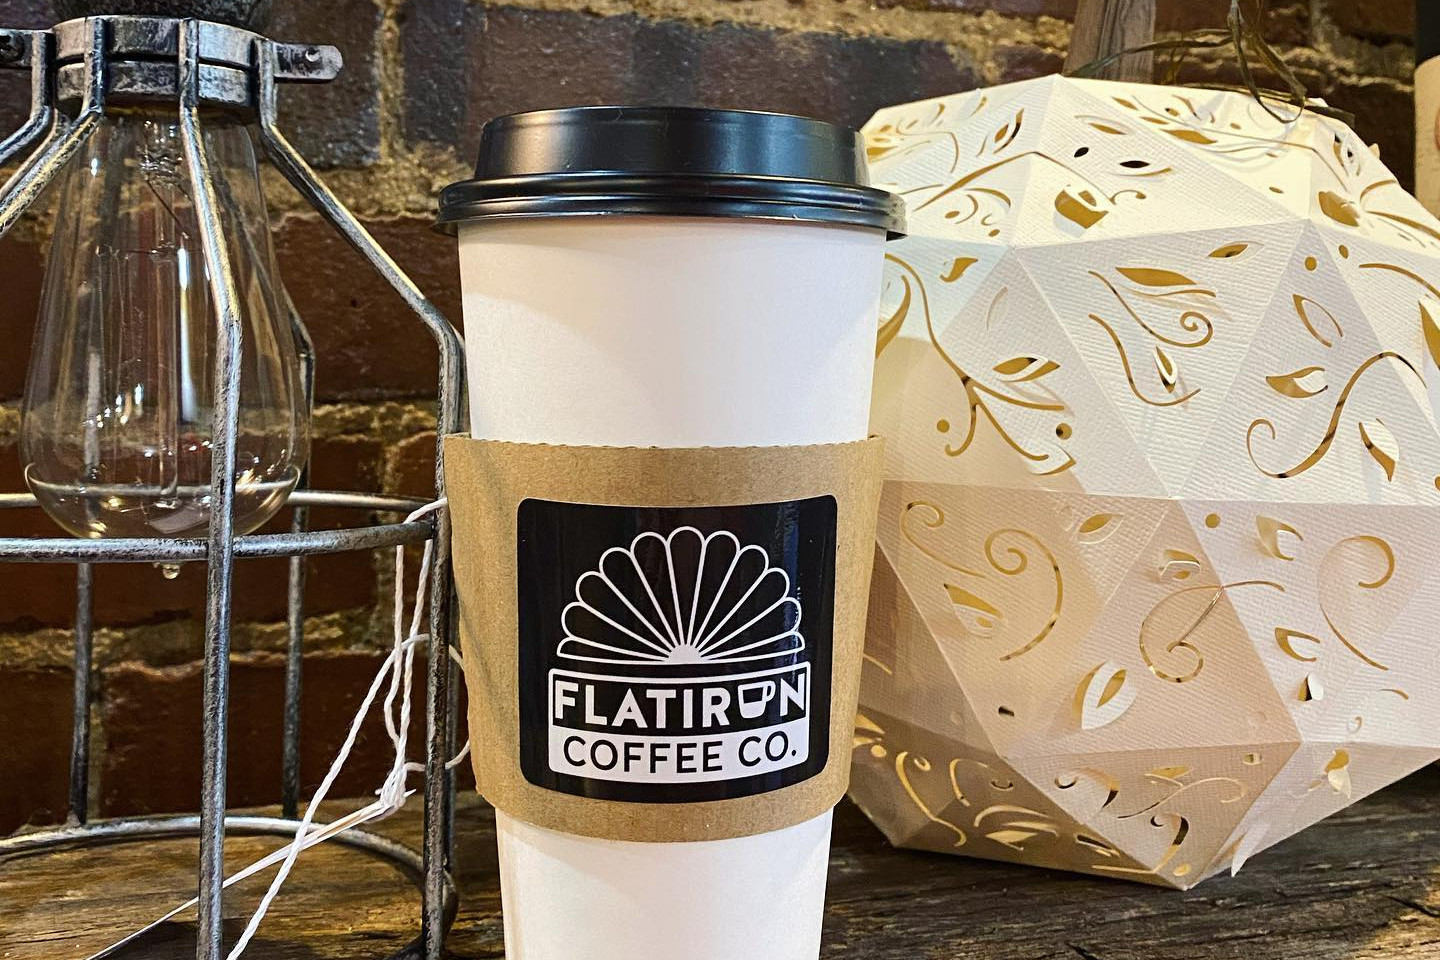 Flatiron Coffee Co.